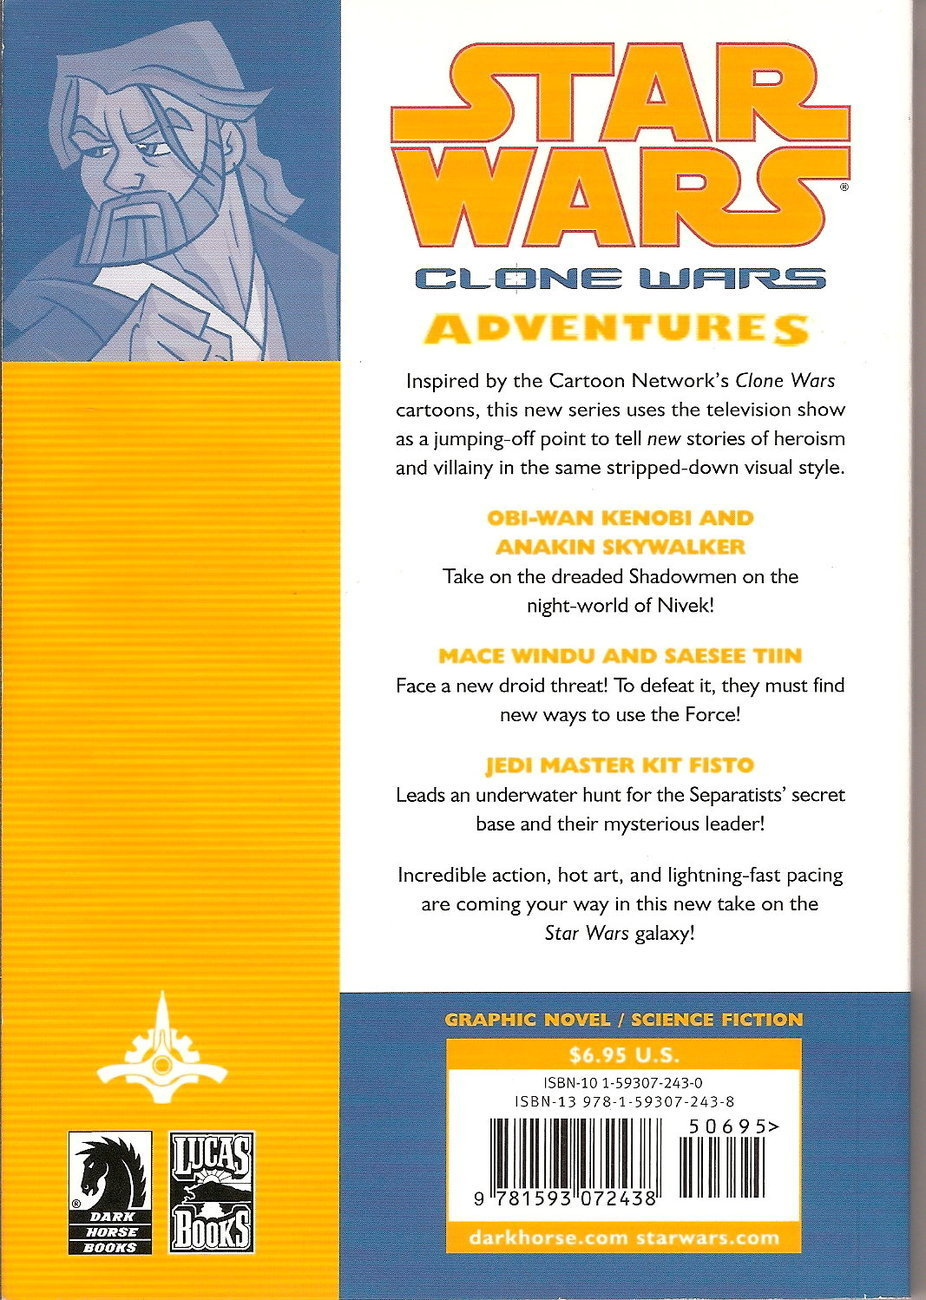 Image 1 of Clone Wars Adventures Vol 1 Star Wars Dark Horse Comic